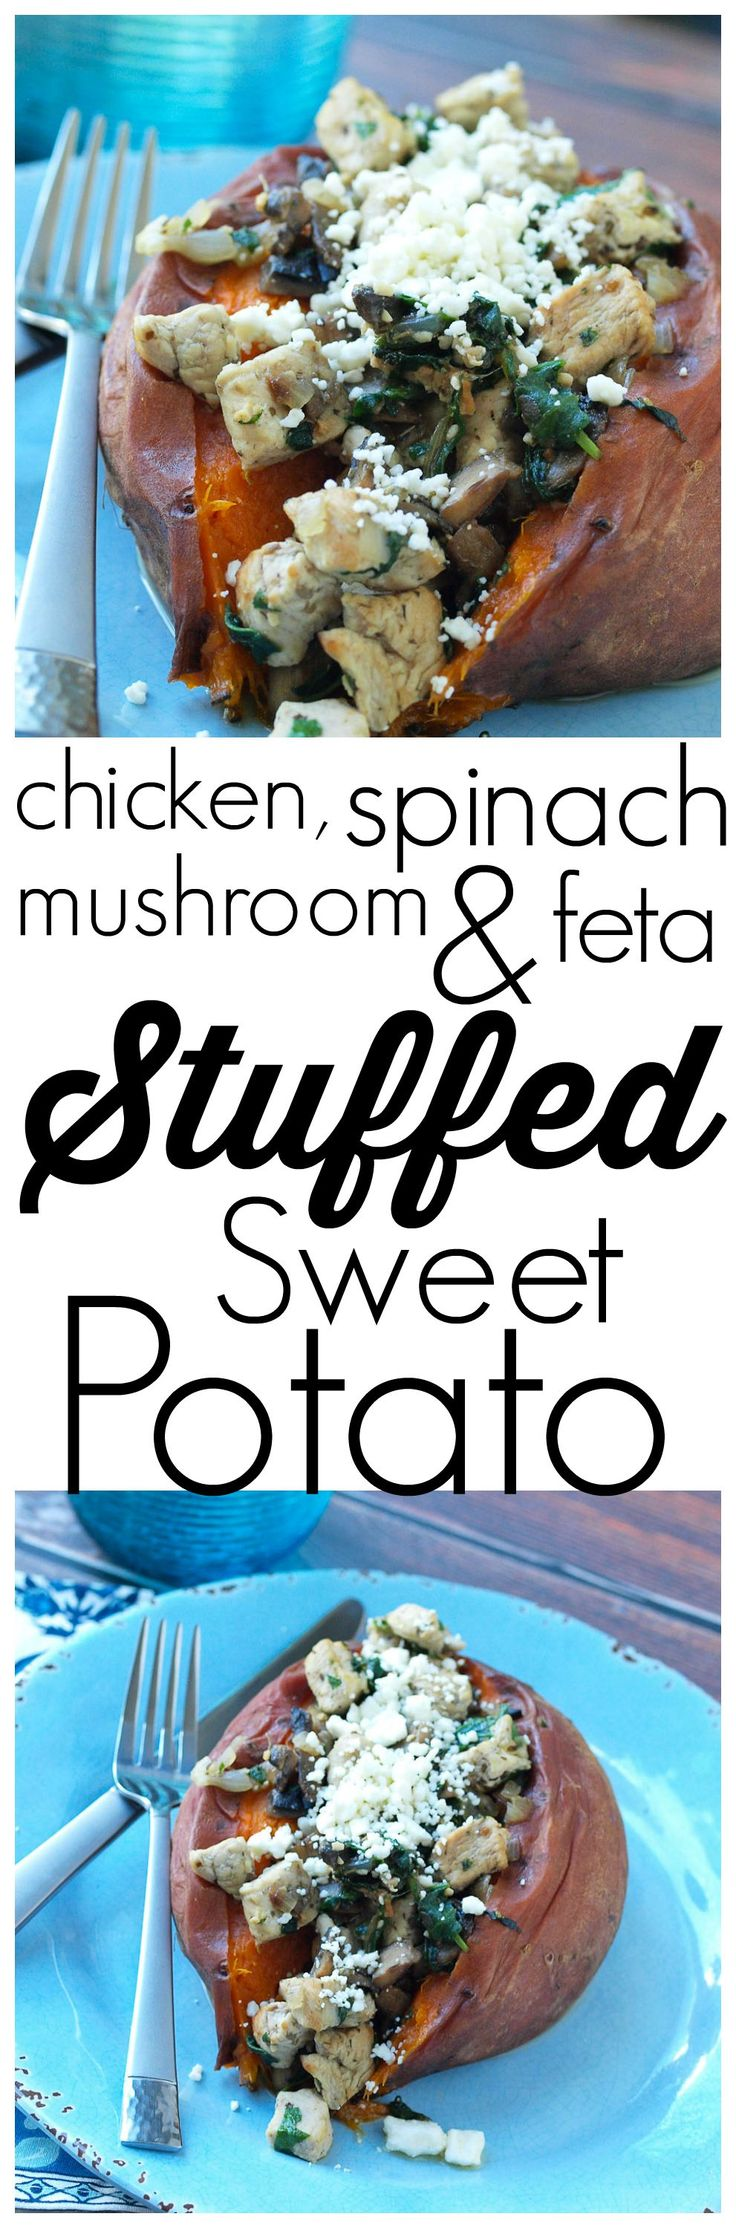 the cook asic recipe minutes  of a Spinach  in takes gel  Potato dinner  Mushroom  a crockpot  This Feta is the Stuffed potatoes rest gluten free  sweet Recipe  Sweet You    lyte recipe weeknight Chicken  the and great quick eating and less for than and healthy Clean uk can iii the